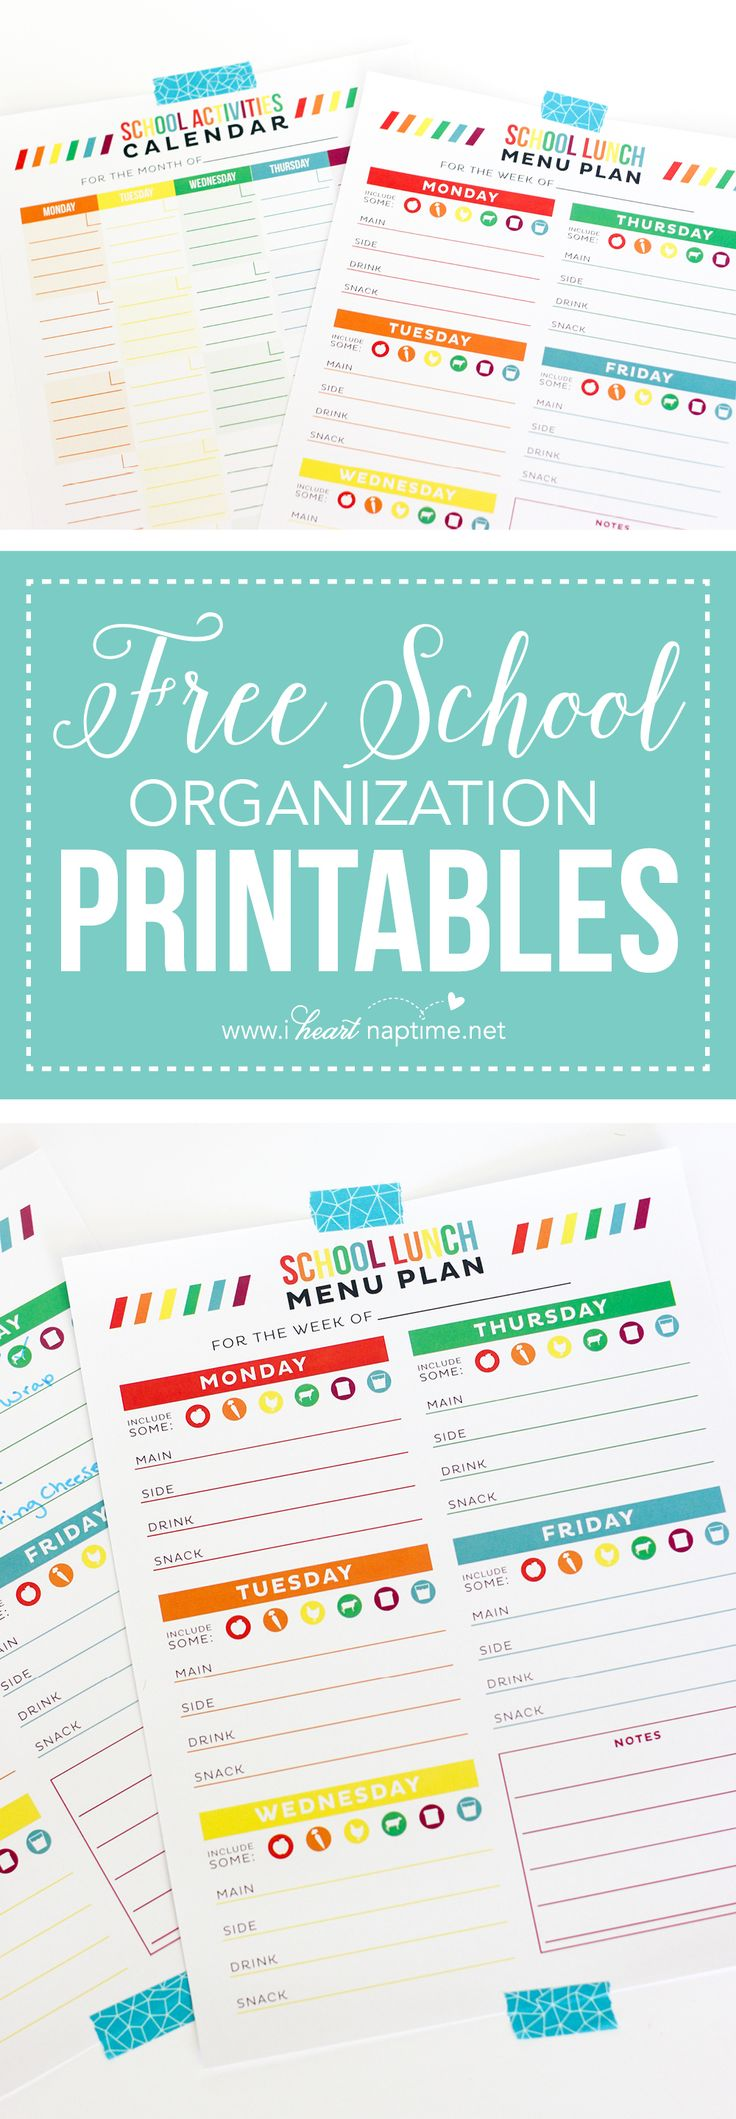 FREE School Organization Printables... print out these free planners to help you stay organized this school year! We have a free school lunch menu planner and a month-at-a-glance activities planner!